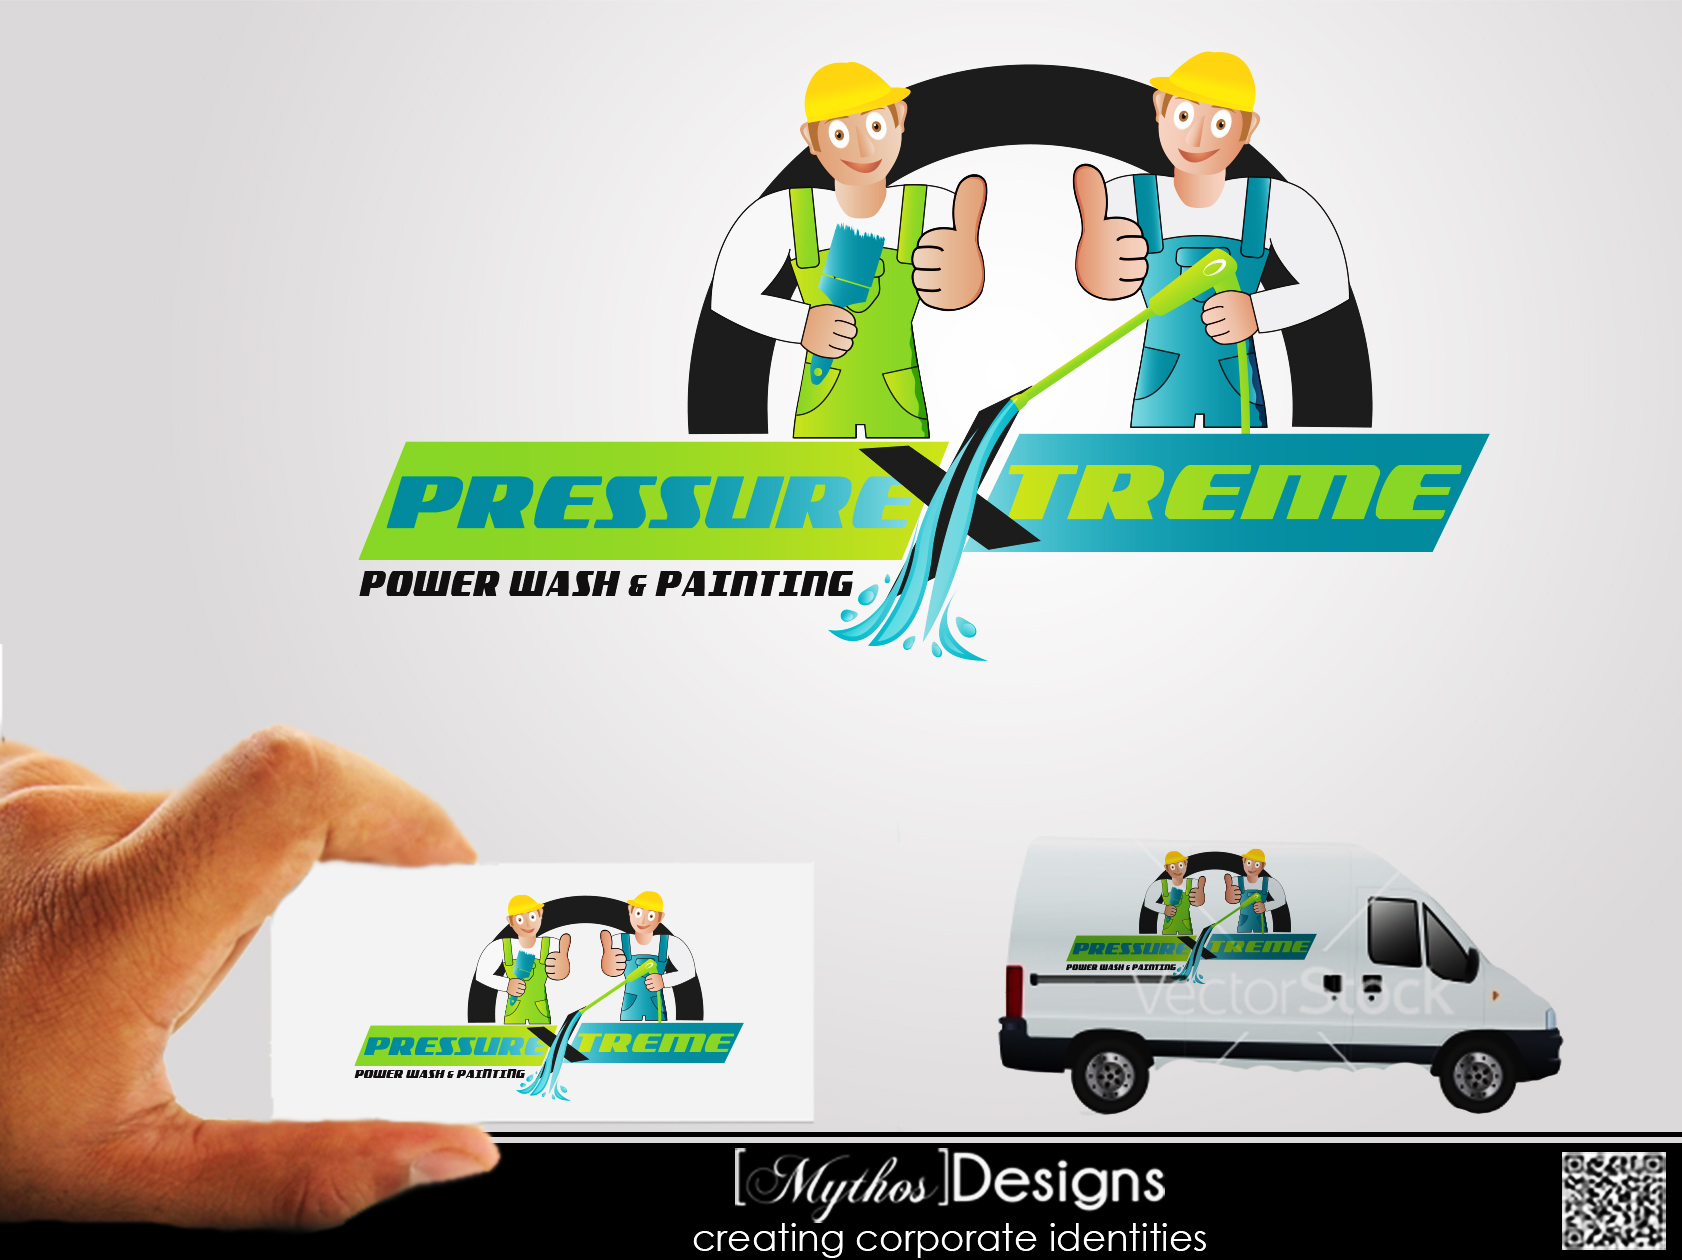 Logo Design by Mythos Designs - Entry No. 88 in the Logo Design Contest New Logo Design for PRESSUREXTREME.